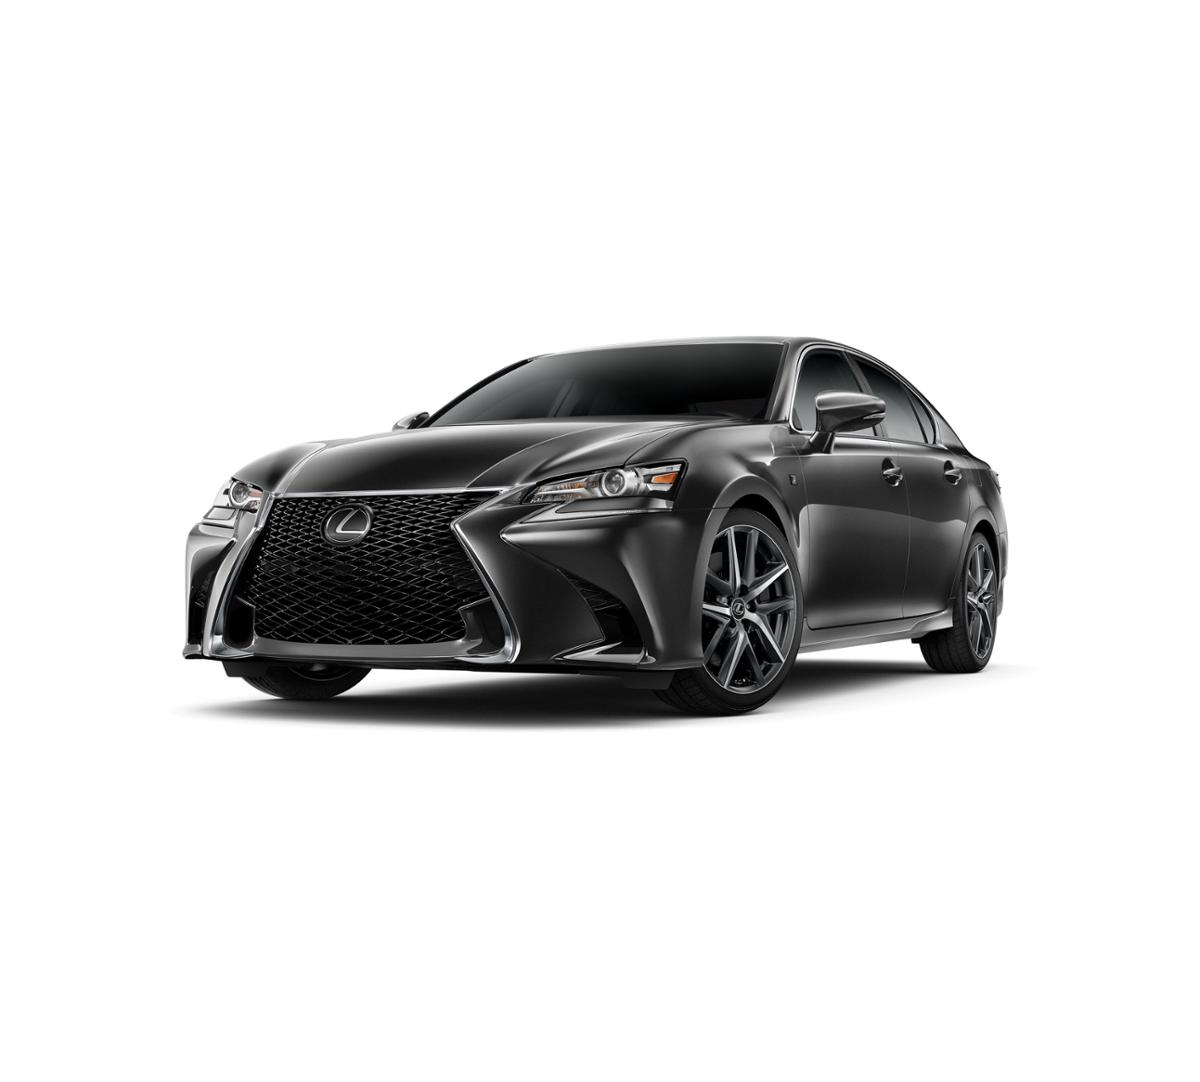 2018 Lexus GS 350 Vehicle Photo in Santa Barbara, CA 93105